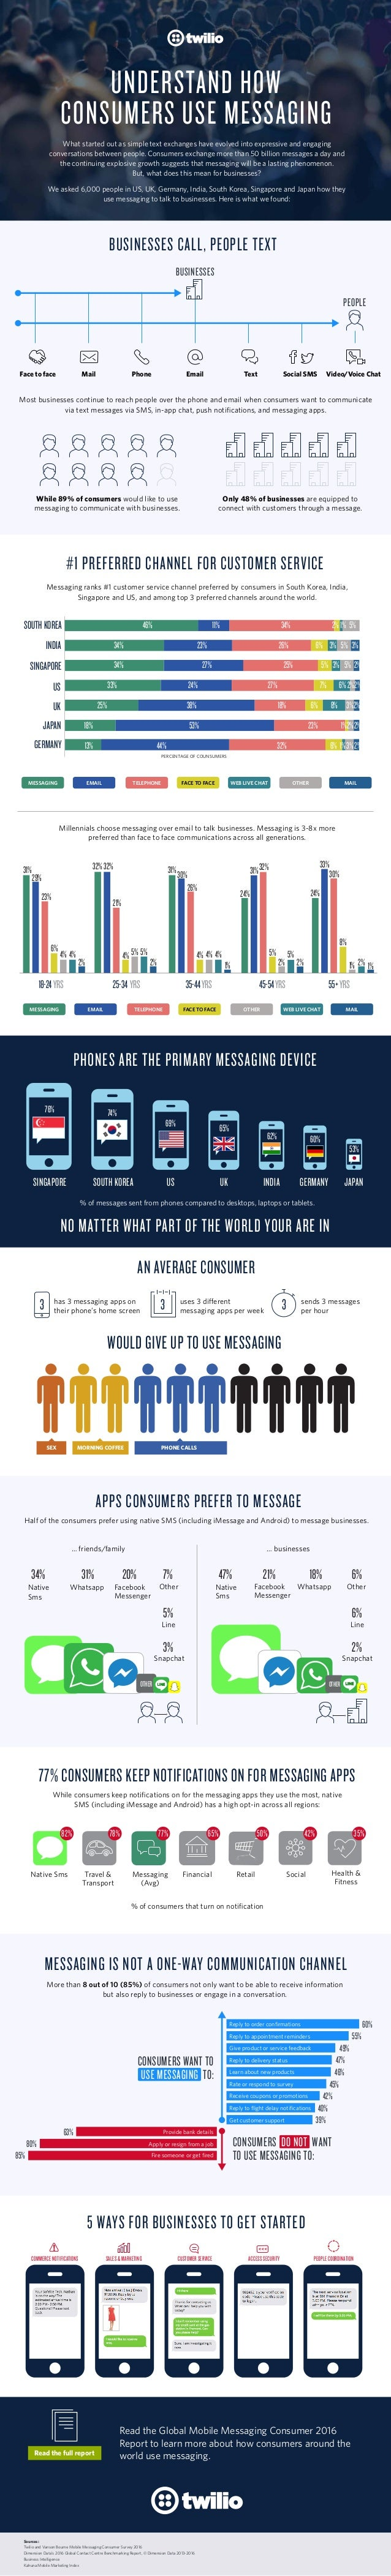 Sources: Twilio and Vanson Bourne Mobile Messaging Consumer Survey 2016 Dimension Data's 2016 Global Contact Centre Benchm...